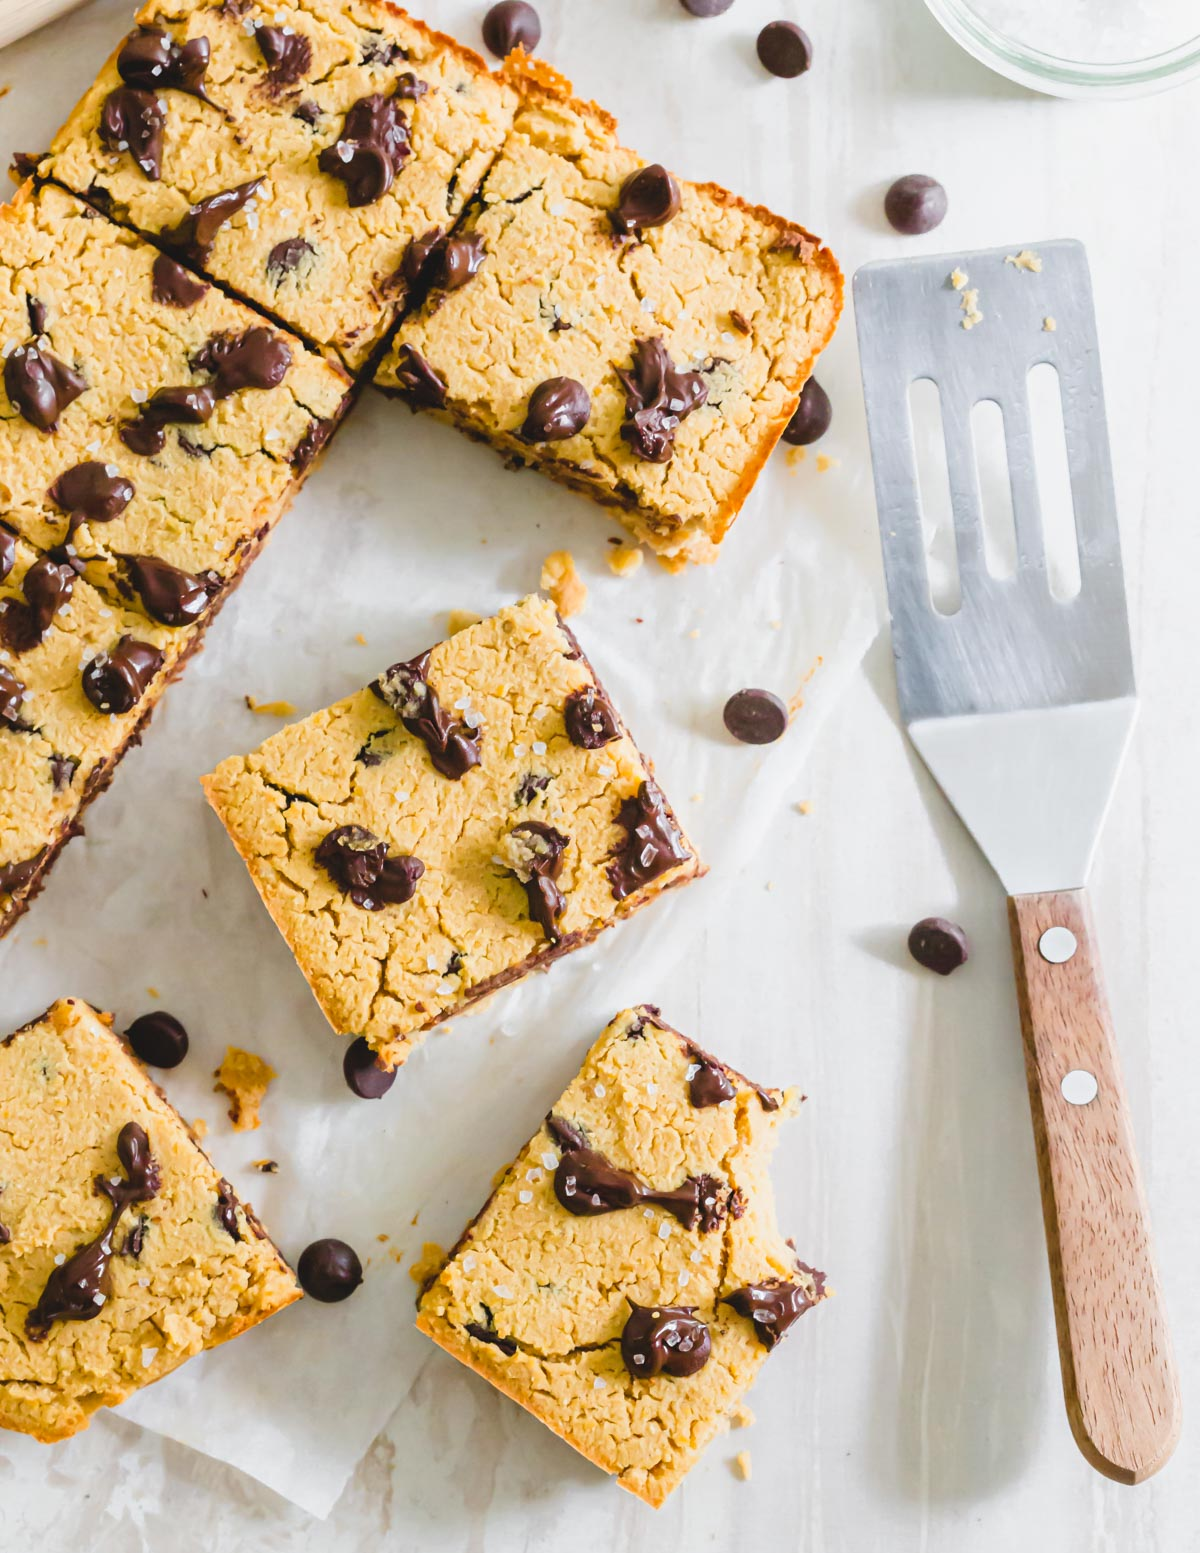 Naturally vegan and gluten-free chickpea blondie recipe with chocolate chips cut into bars and garnished with coarse sea salt.